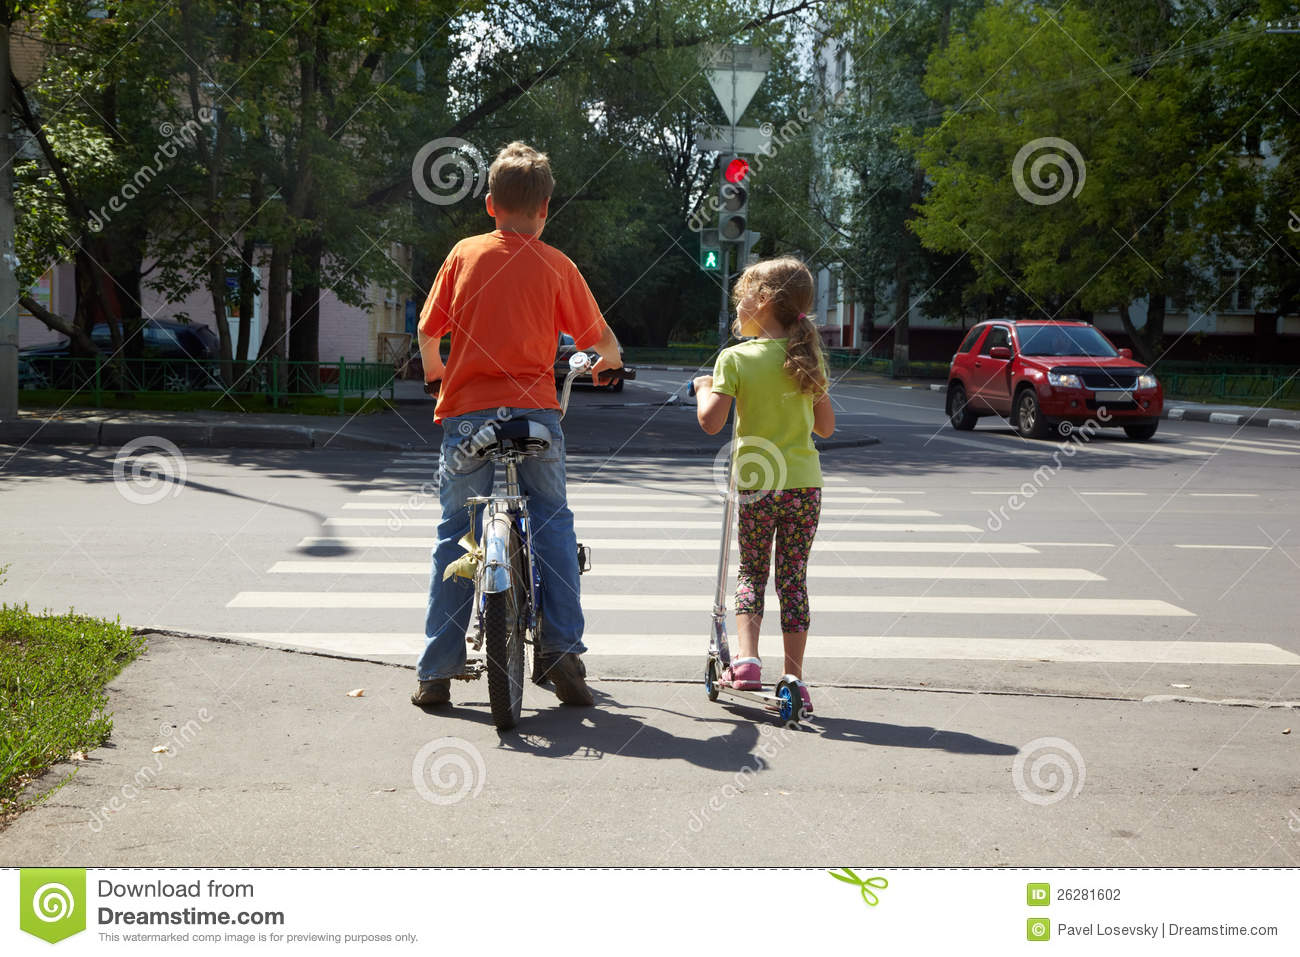 Boy with bicycle and his sister with scooter stand